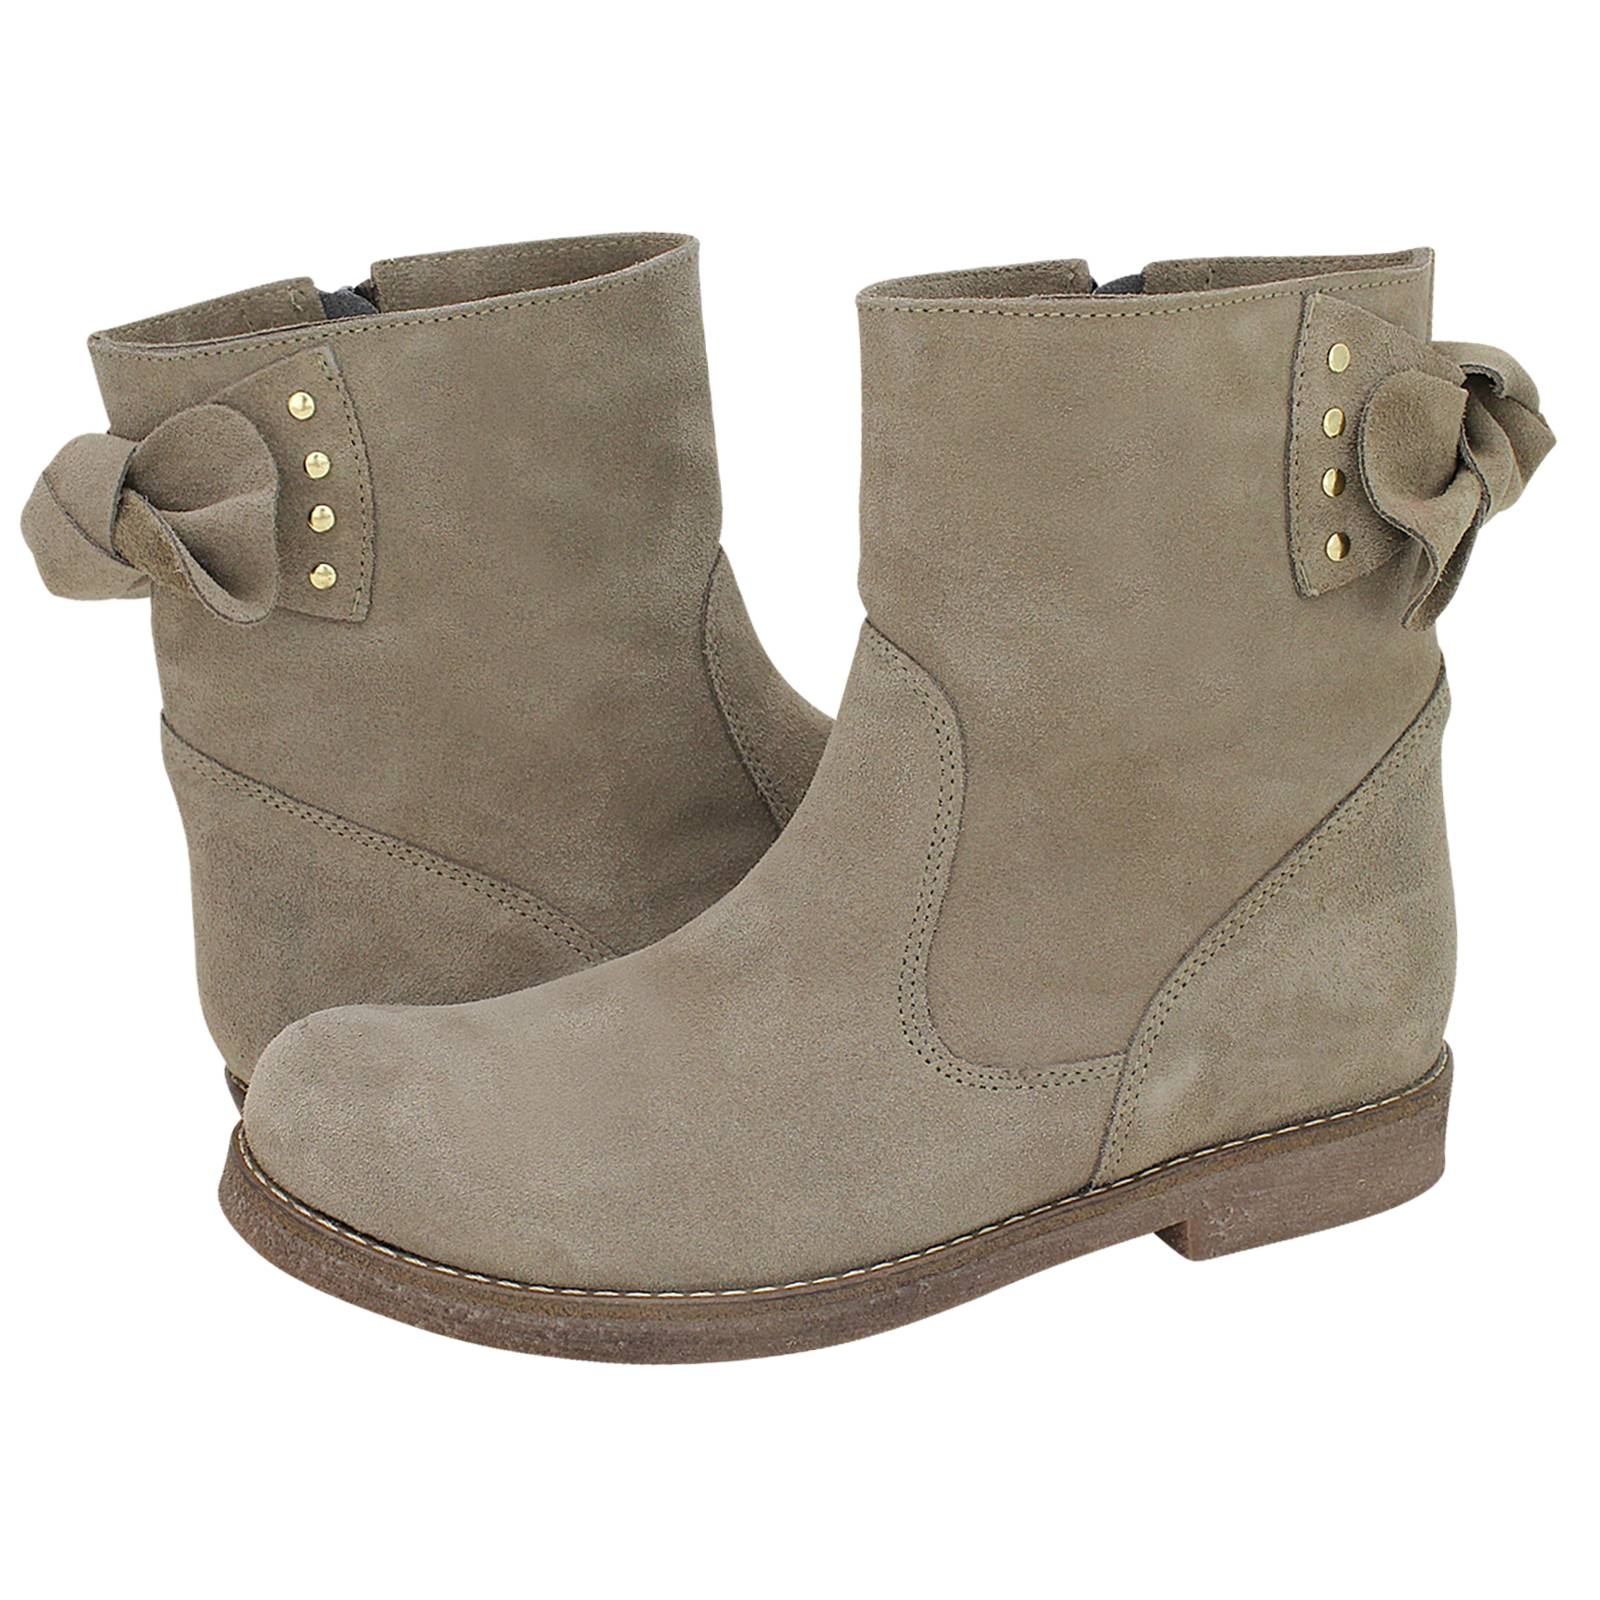 Teplodar - Esthissis Women s low boots made of suede - Gianna ... e76ad4dd731